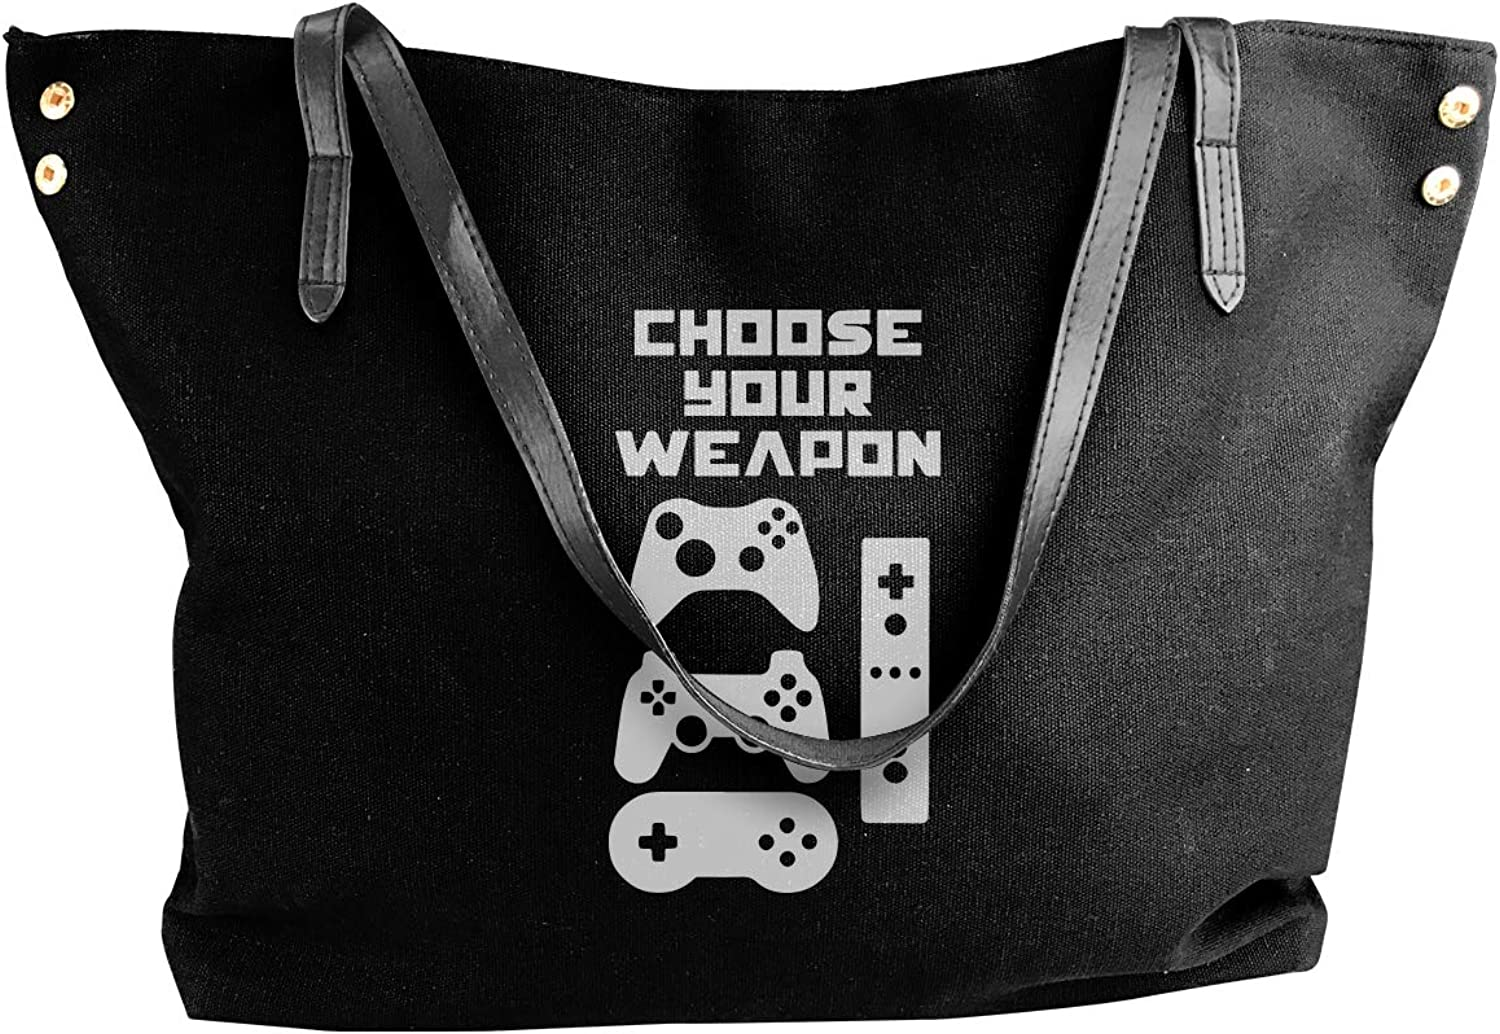 Choose Your Weapon 1-1 Women'S Casual Canvas Sling Bag For School Shoulder Tote